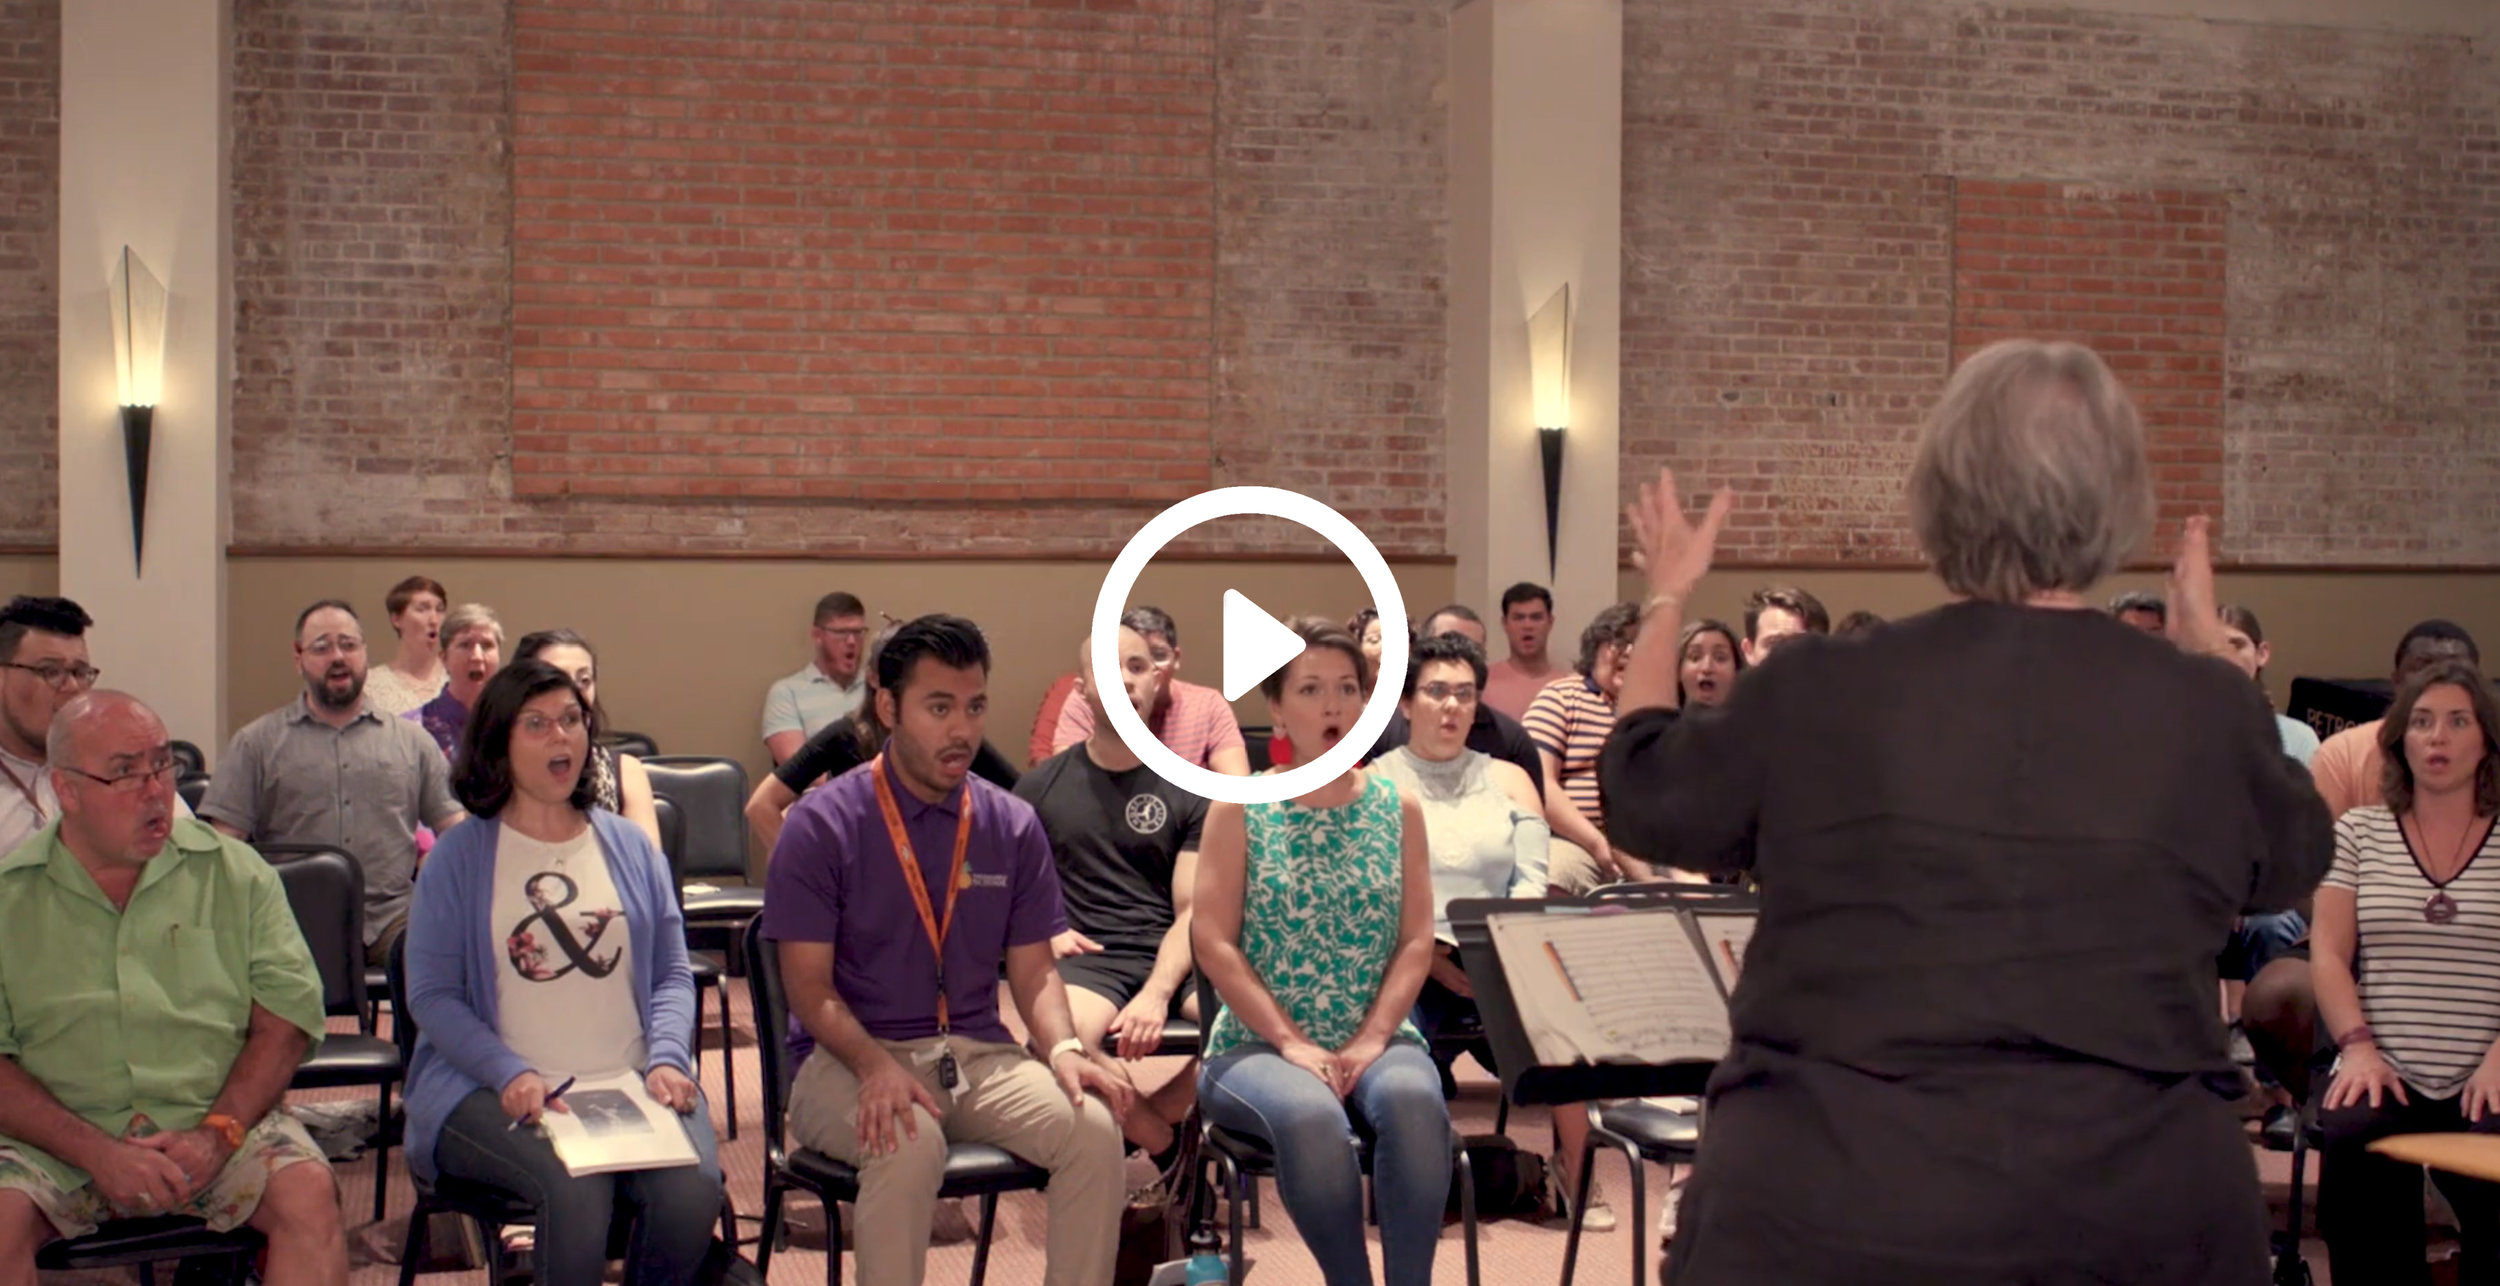 Chorus Preview - Listen to the powerful voices of our chorus, led by Dottie Randall